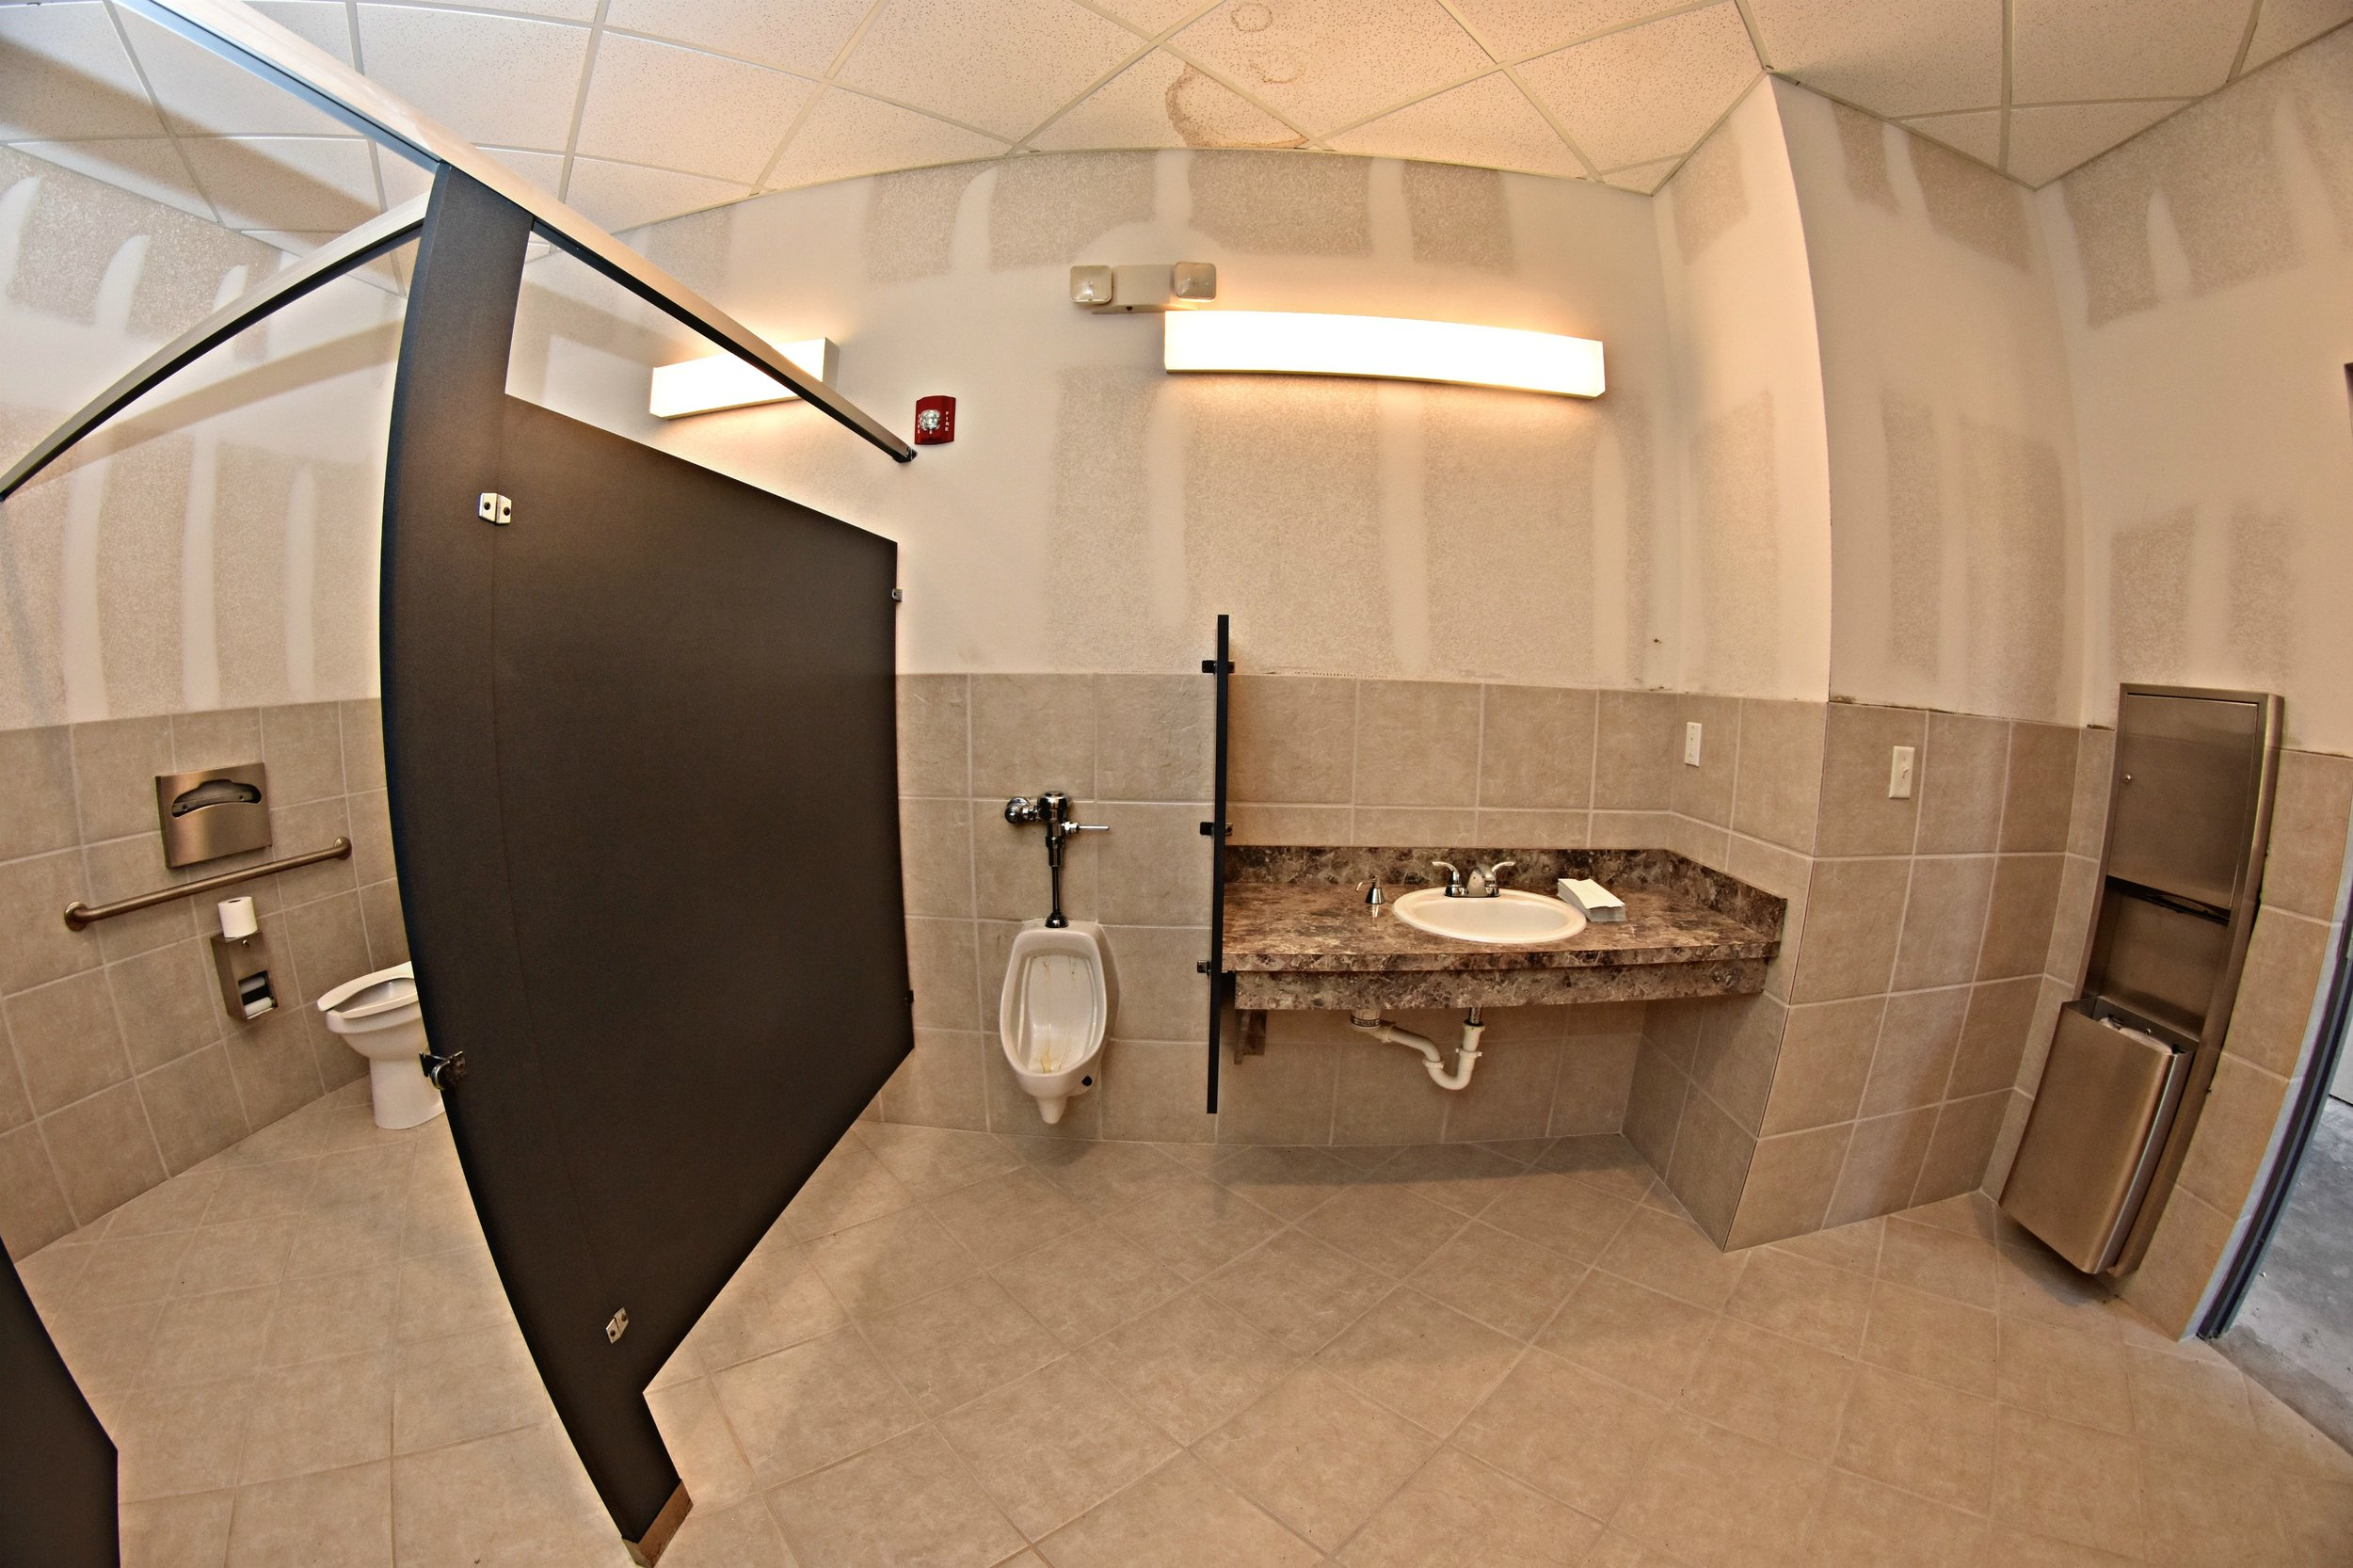 21519 US M Bathroom.jpg